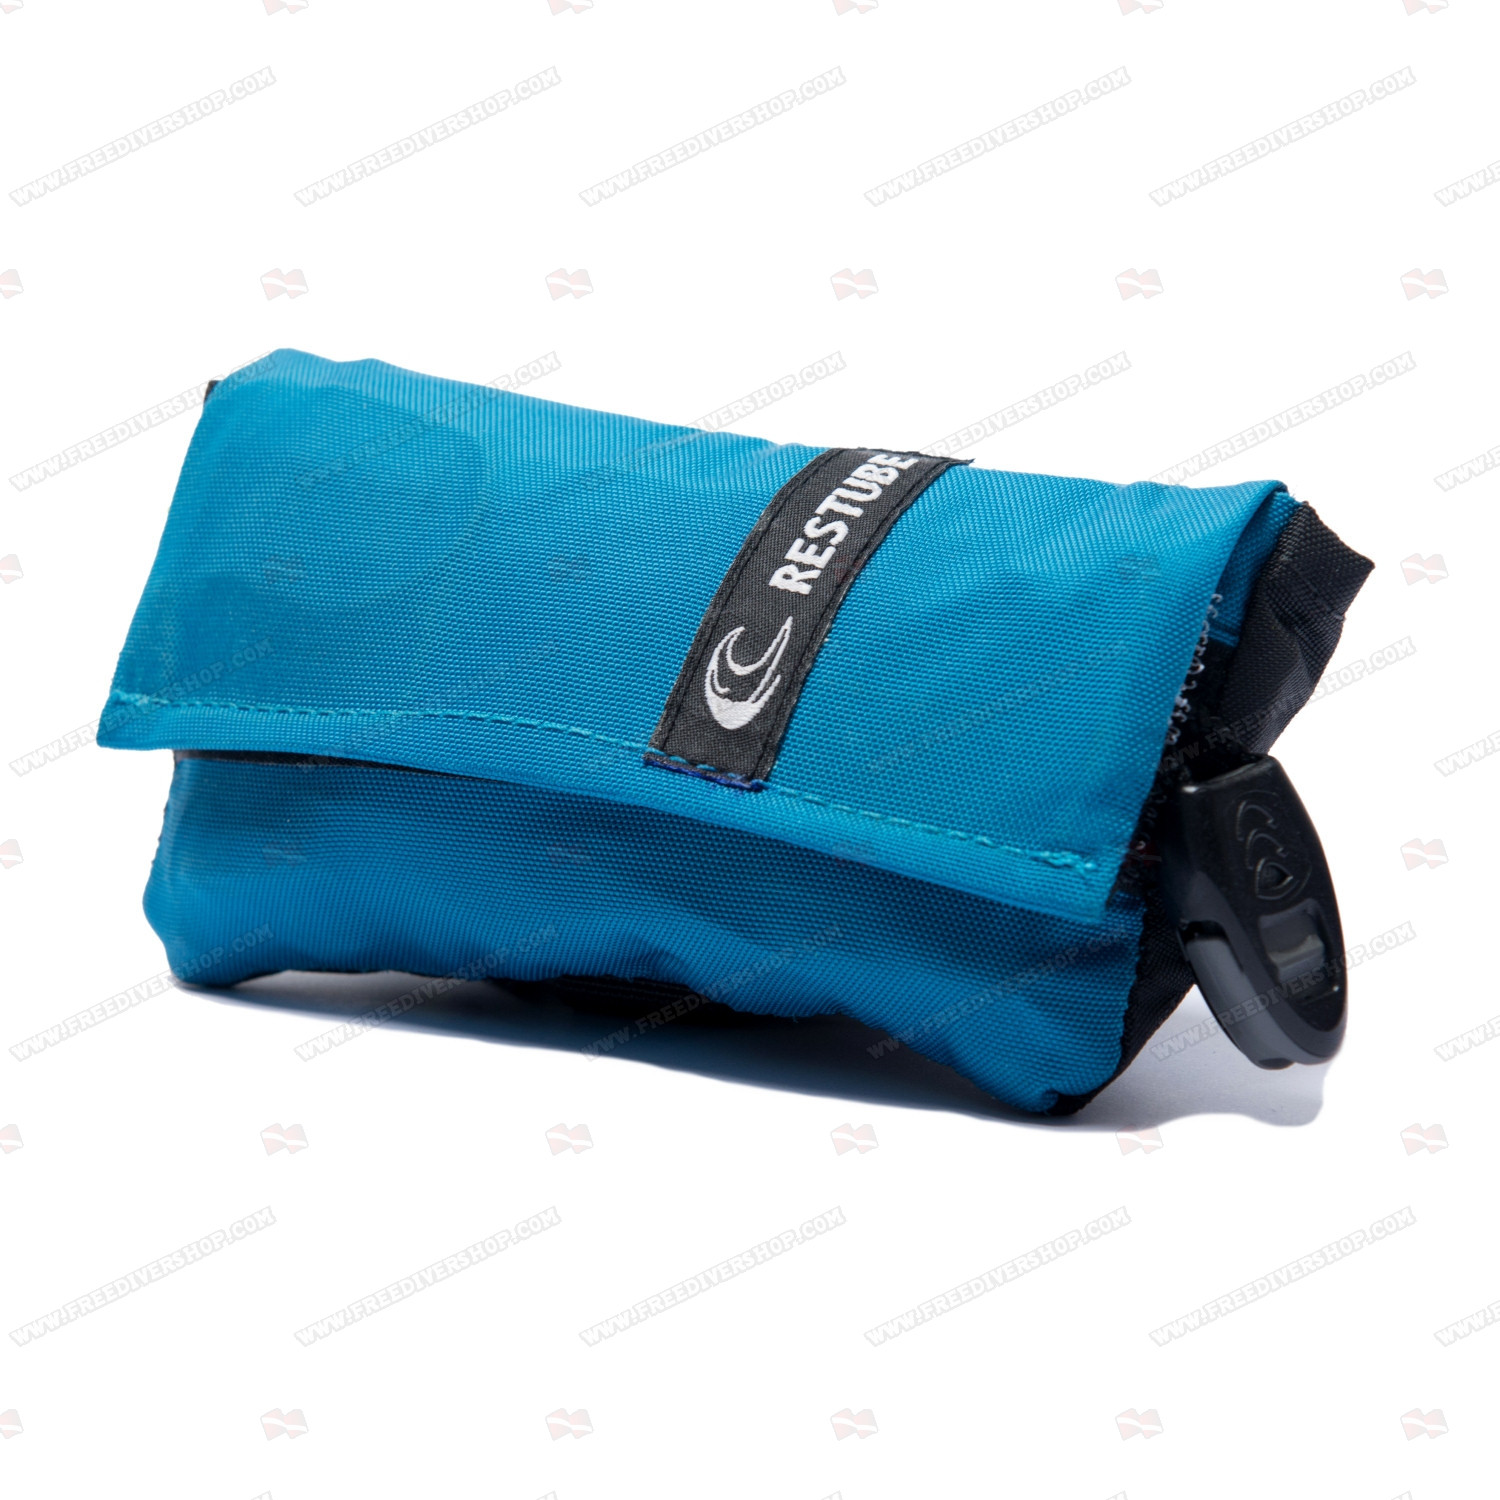 Restube Classic - Self Inflating Safety Buoy